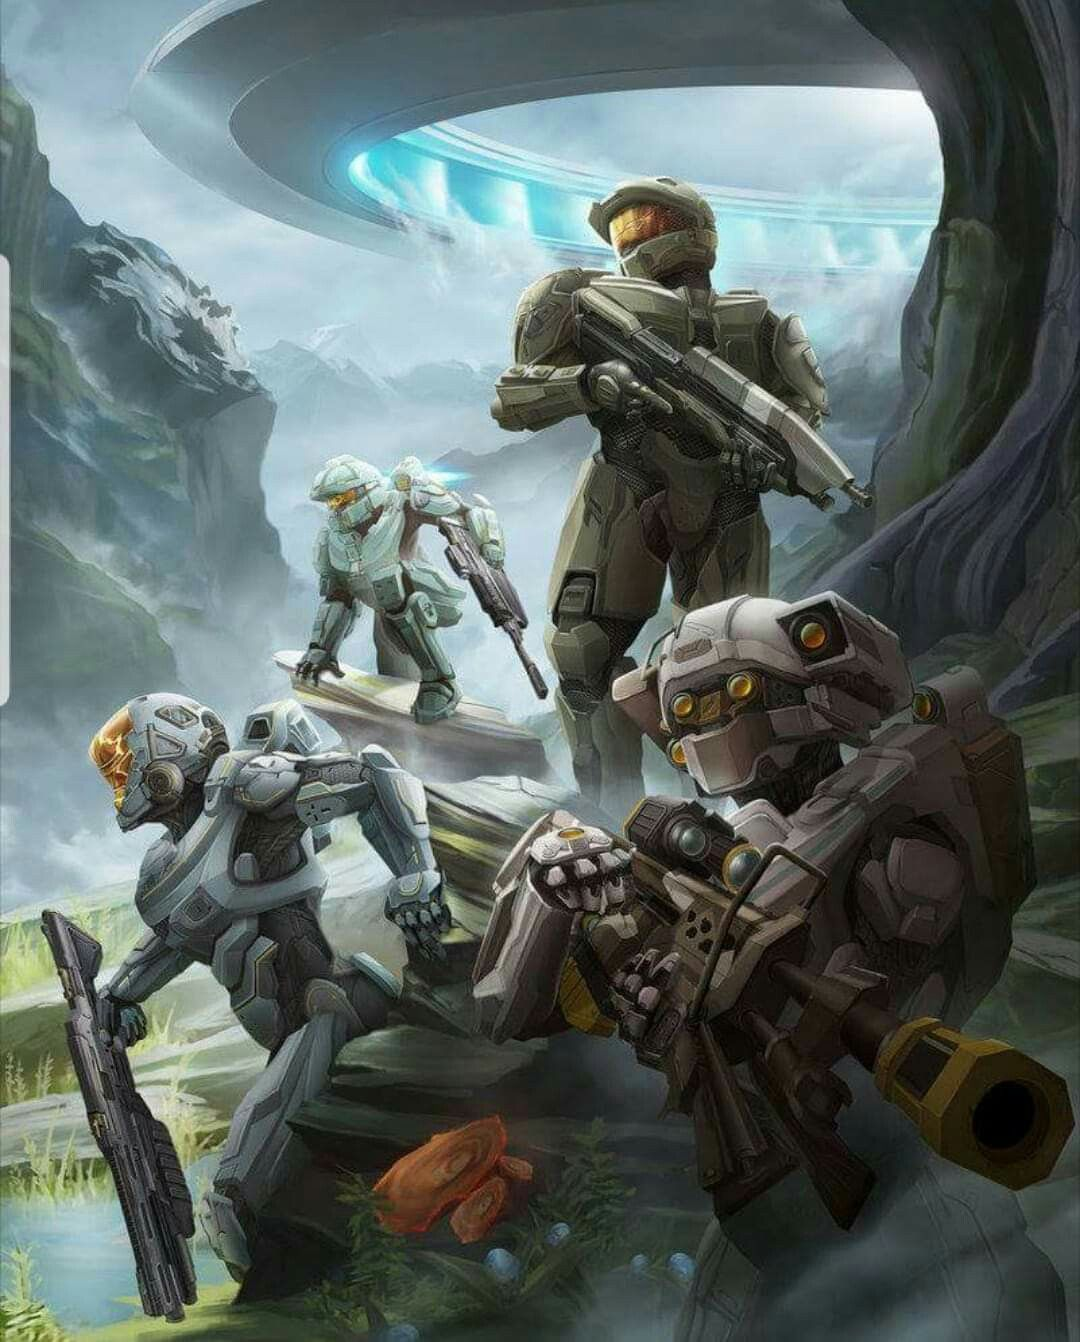 Pin By Gravemind On Blue Team Halo Master Chief Halo 5 Halo Armor